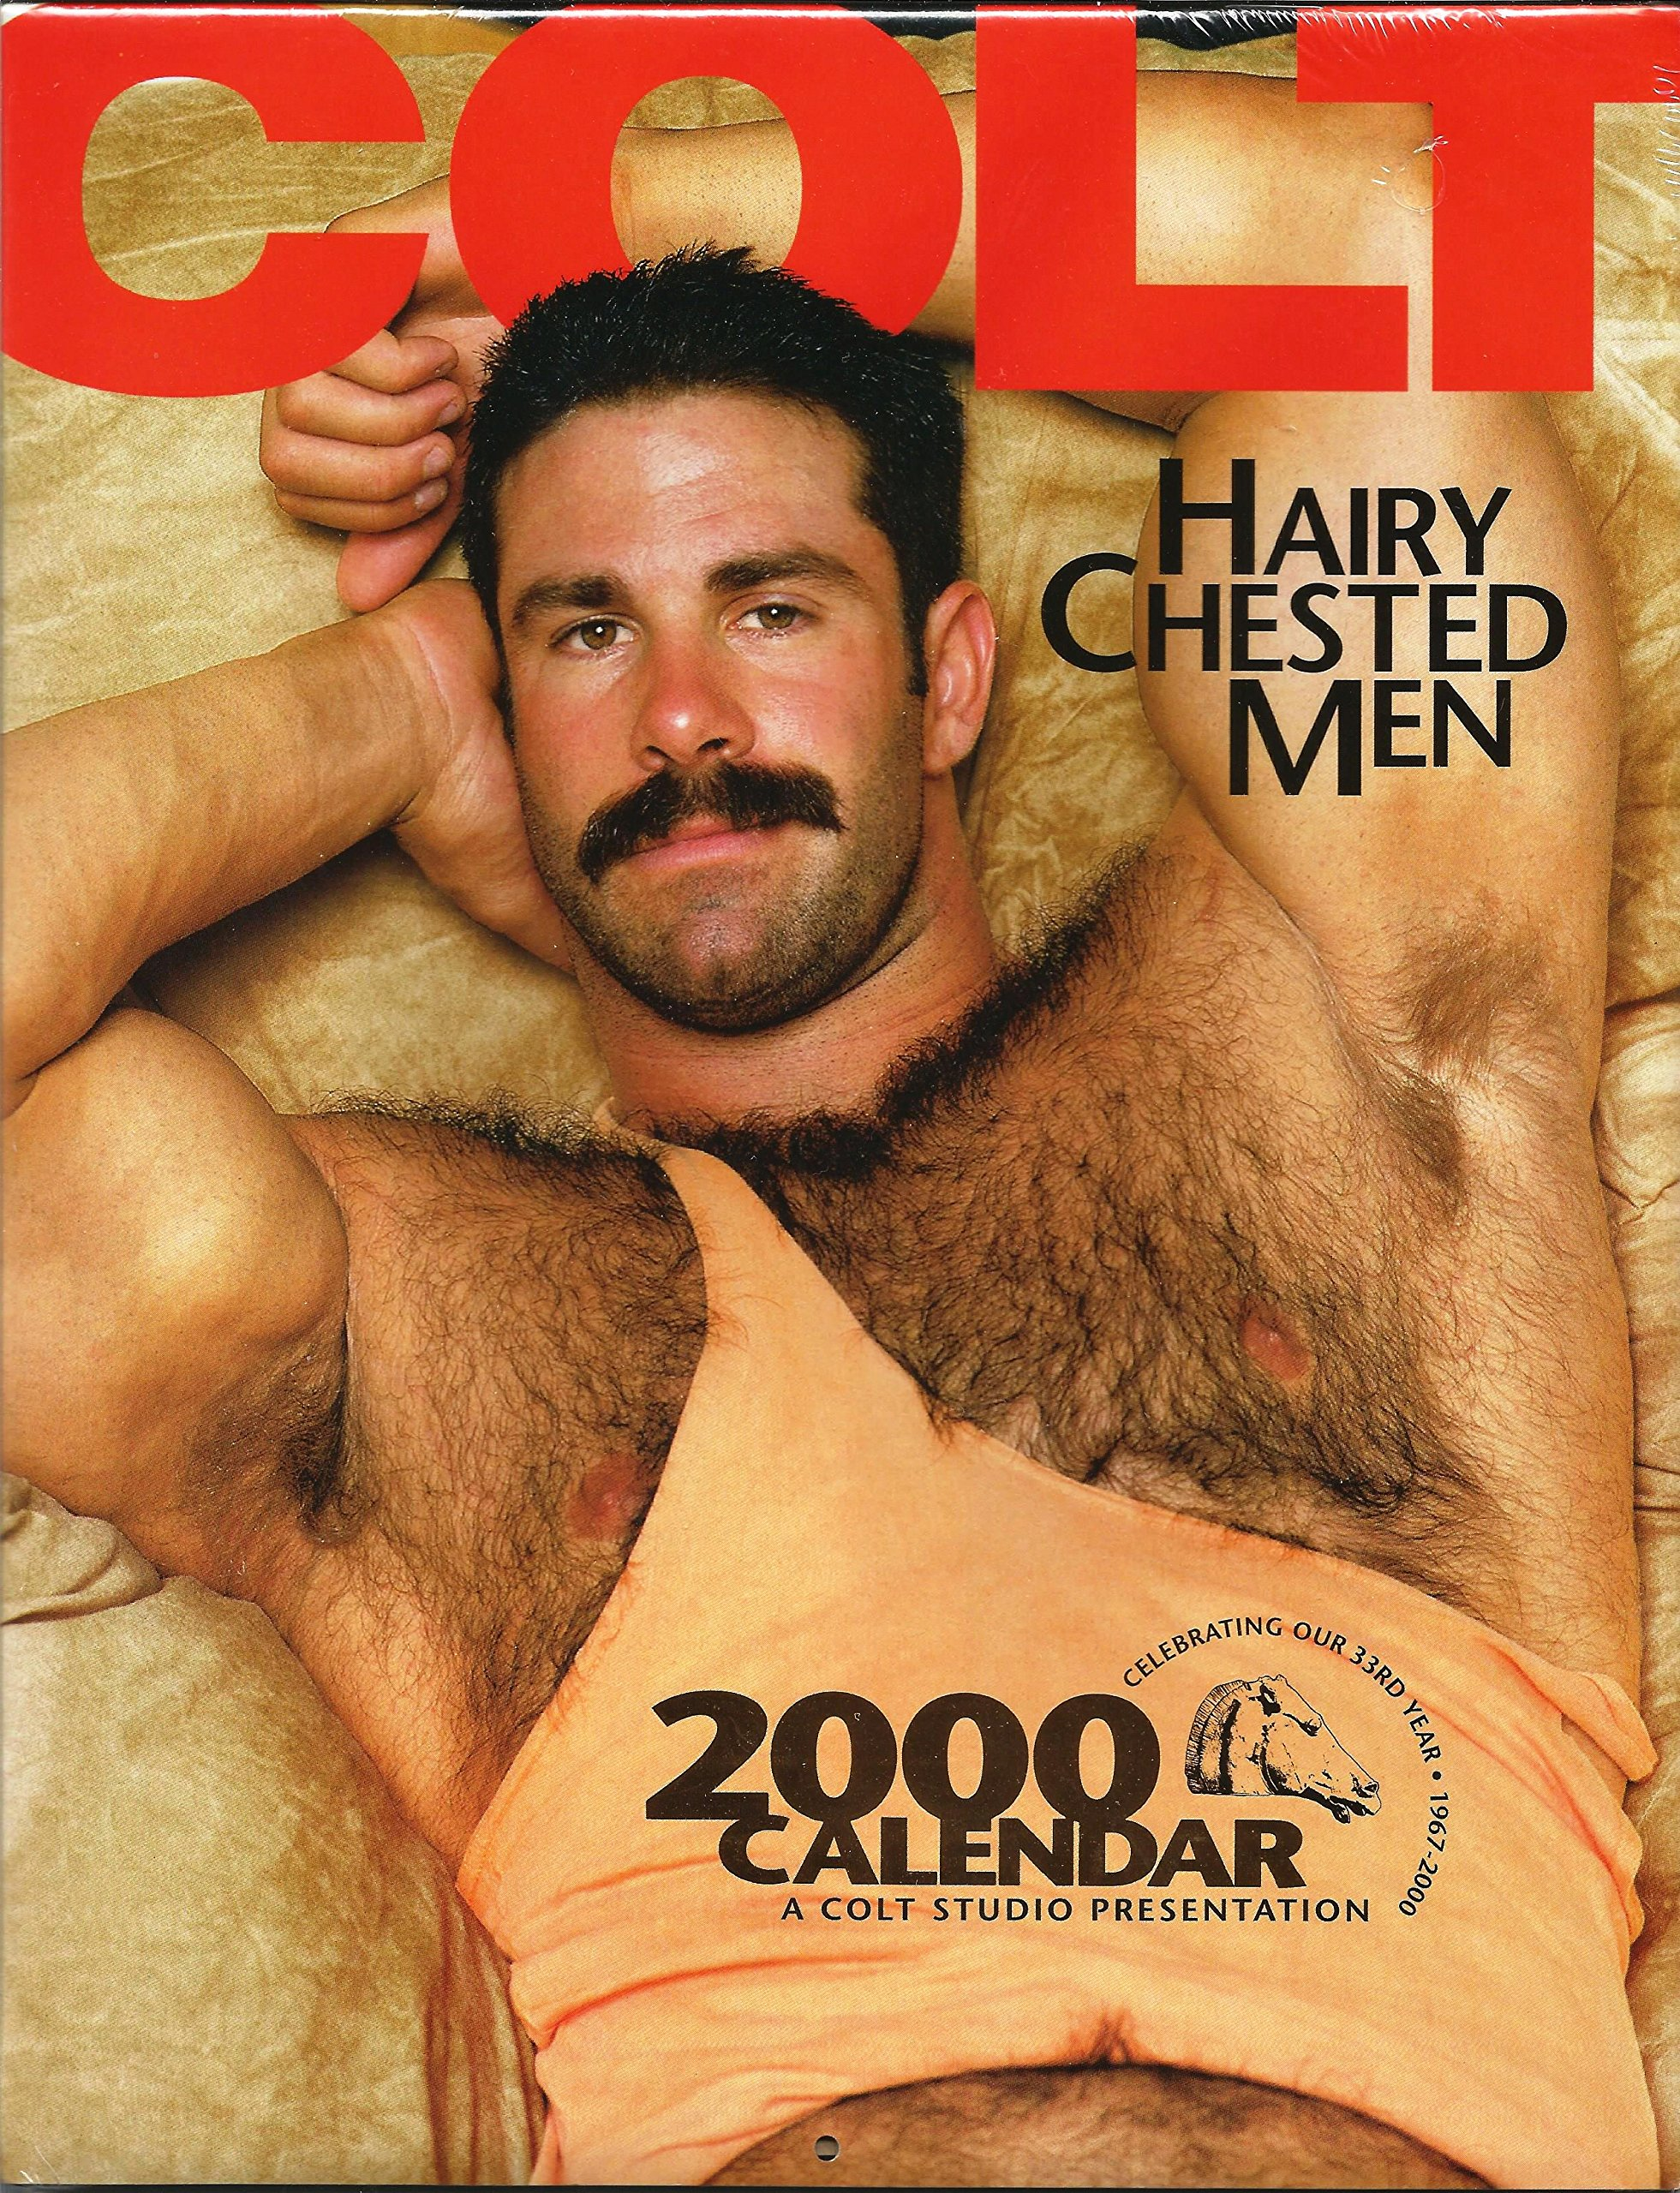 Hairy chested men photos